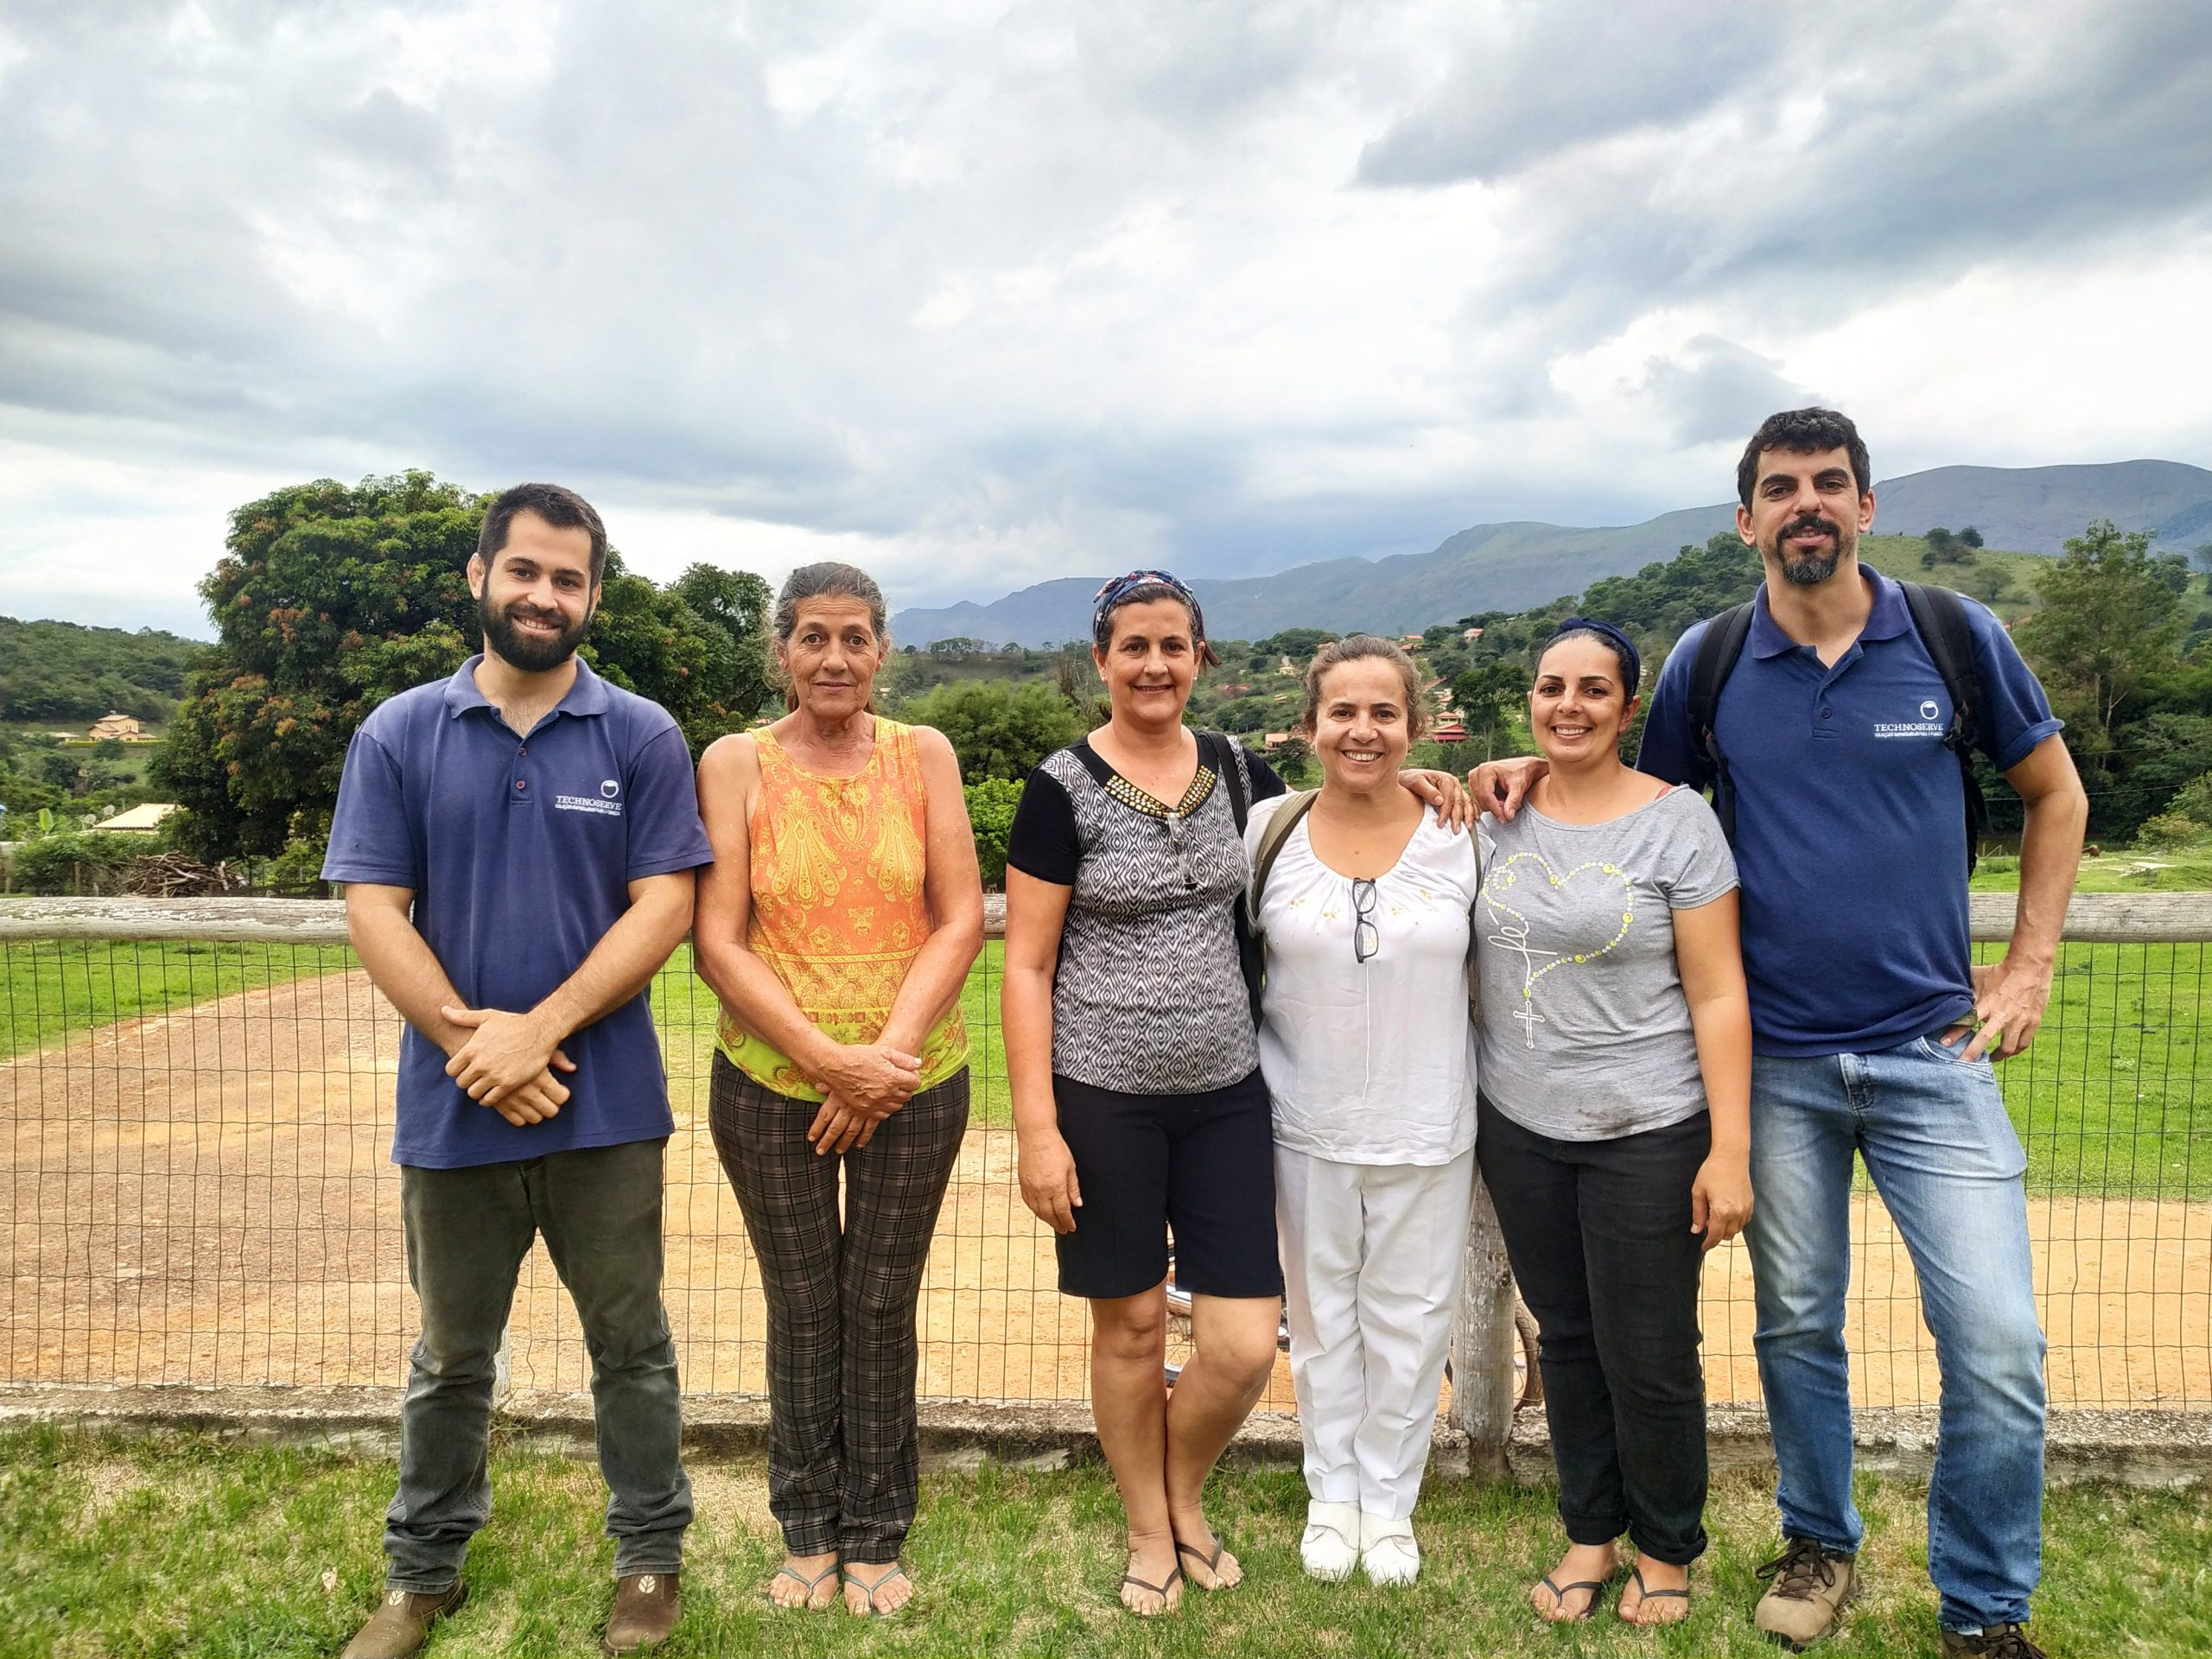 The women who started Talento do Campo stand with two TechnoServe advisors.